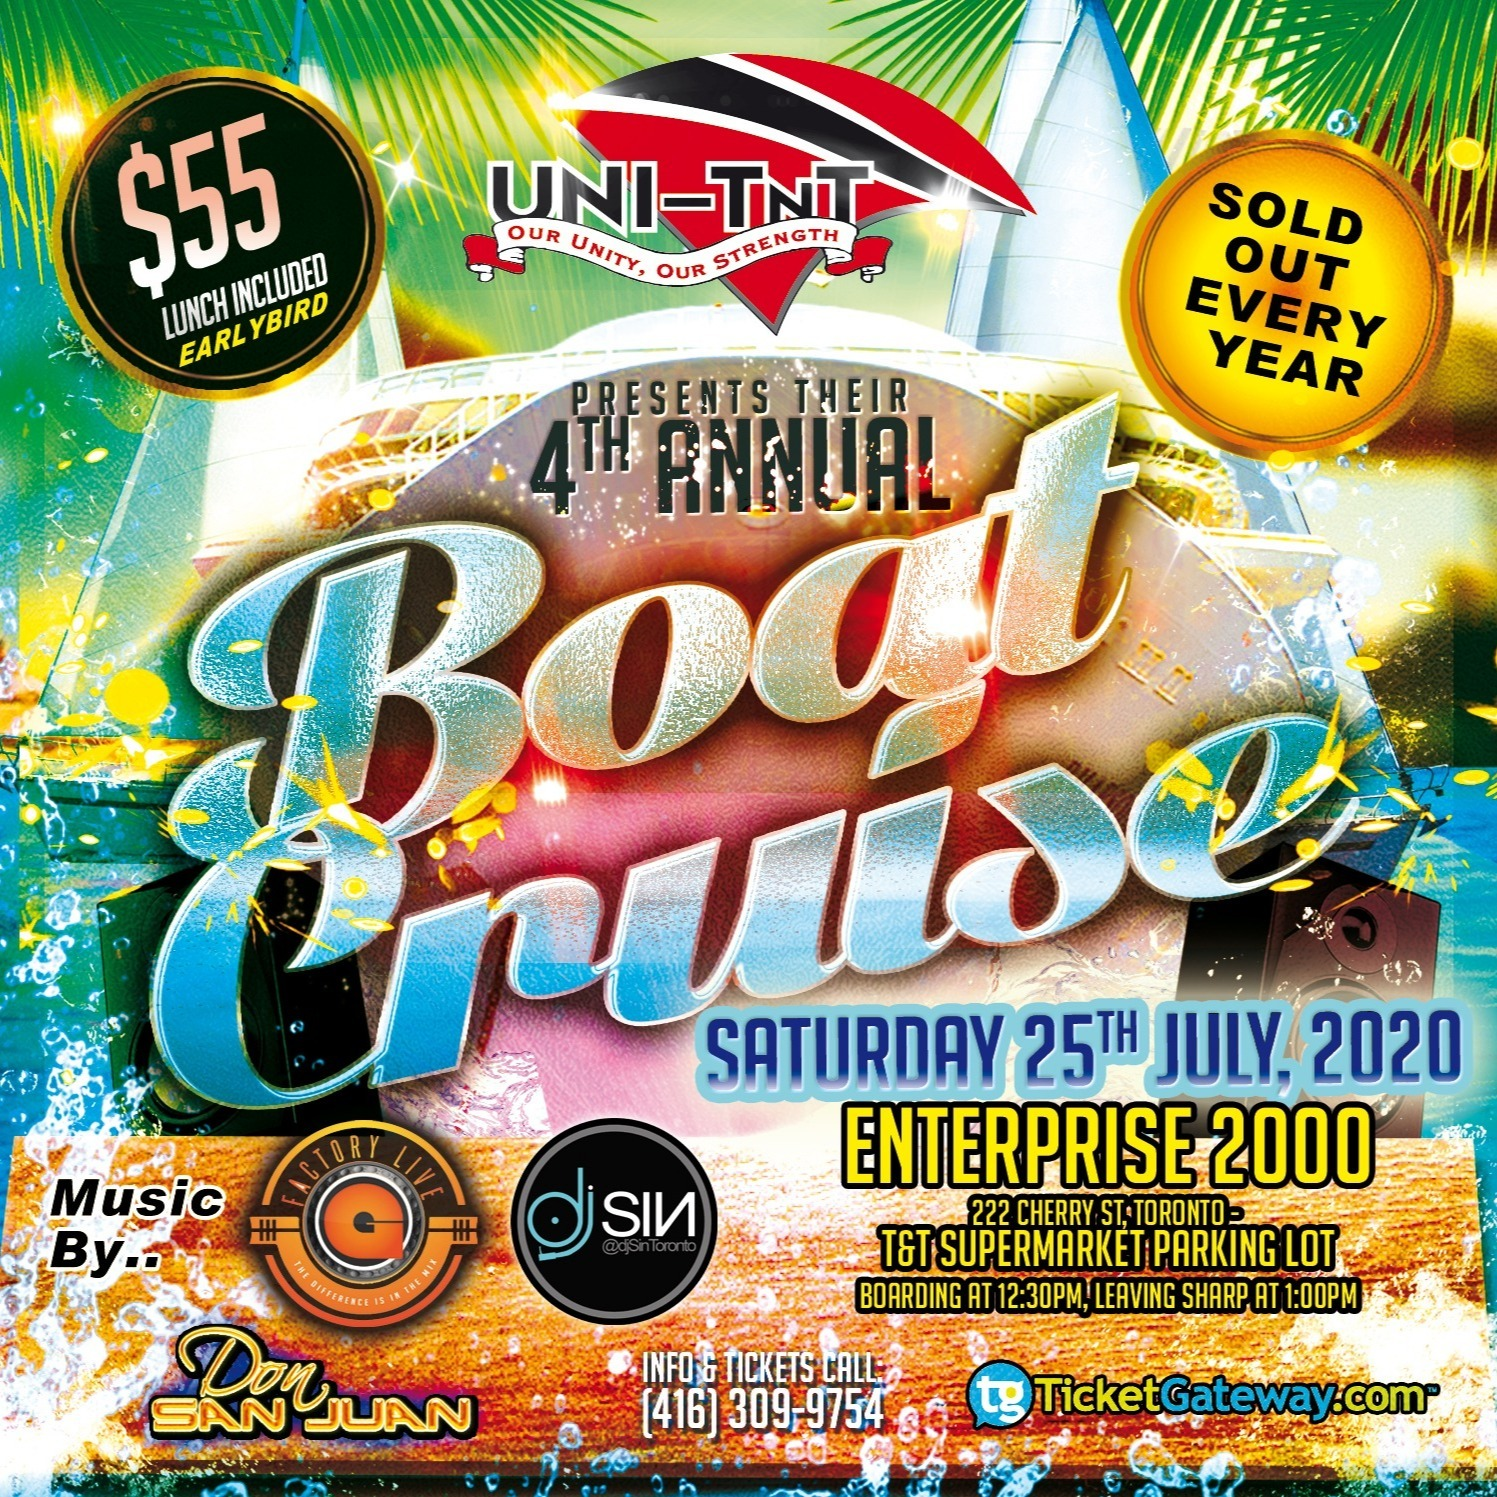 Uni-tnt 4th Annual Boat Cruise